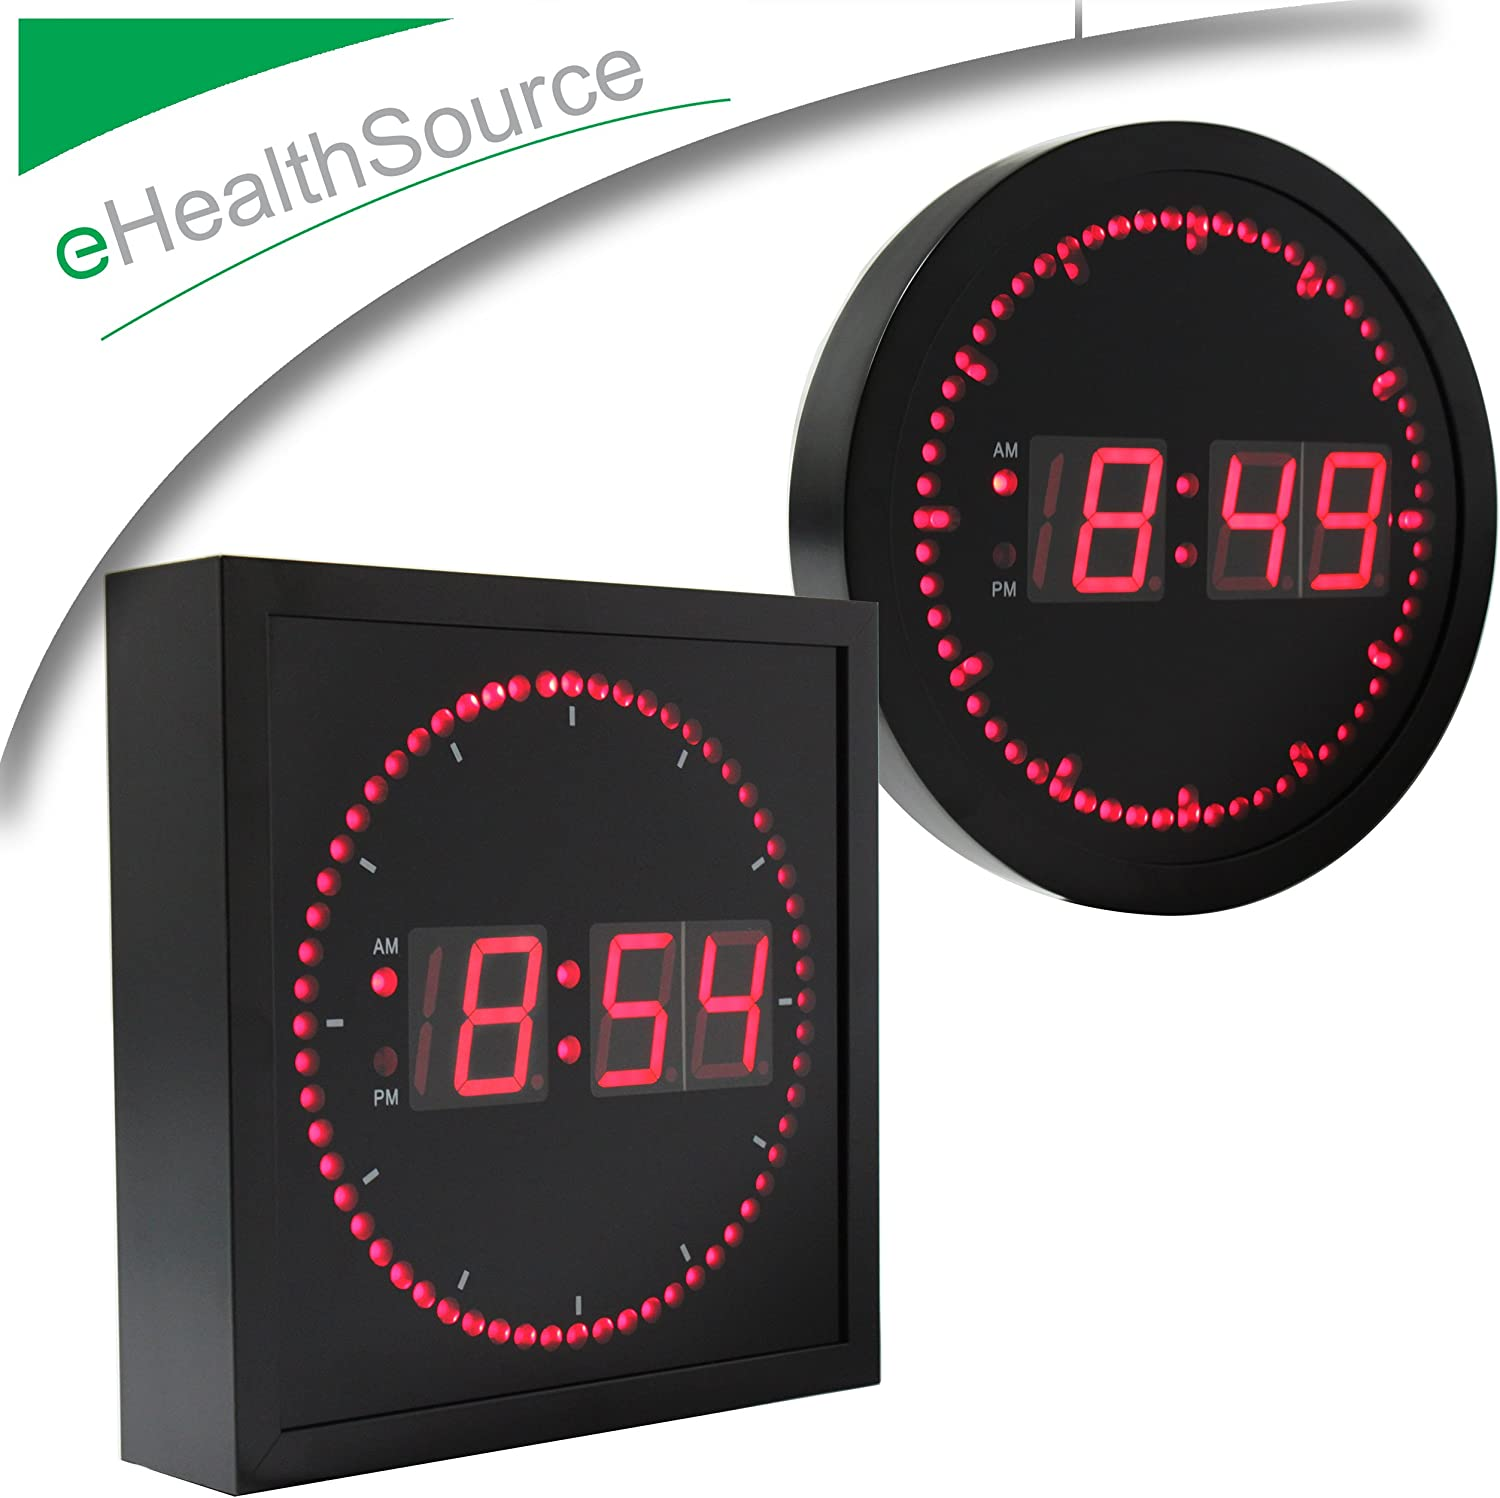 BRG Precision Digital LED Wall Clock  Second Marker Circles Around Time RED NEW